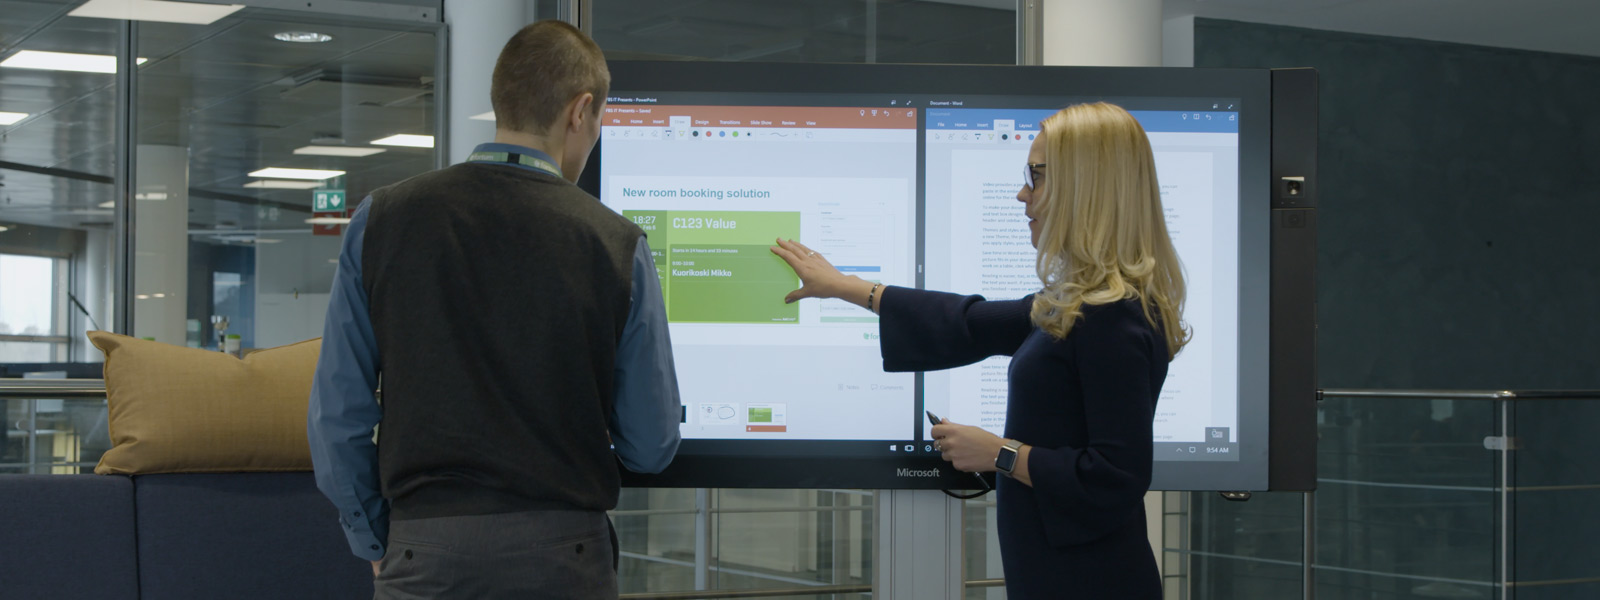 A man and woman stand in front of a Hub with PowerPoint and Word open on the screen